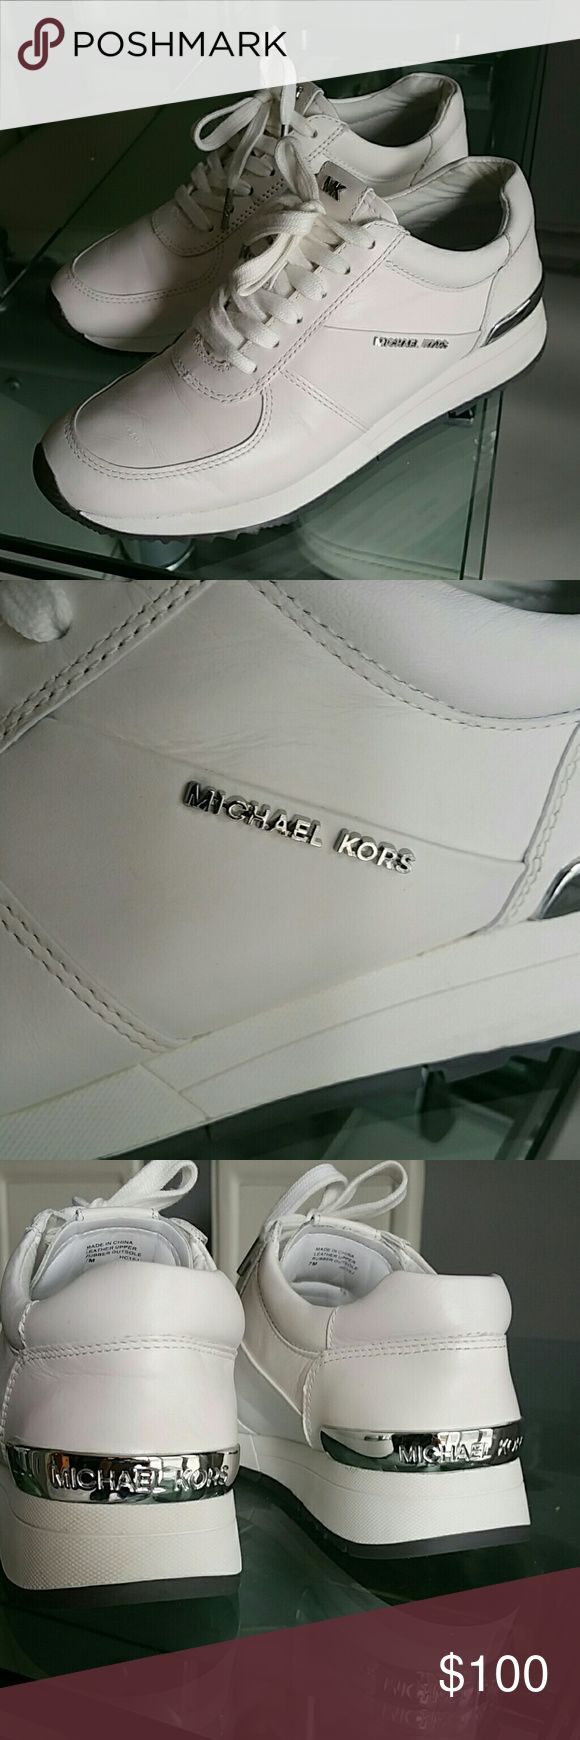 Michael Kors Casual trainer shoes Like new Tv 150 Michael Kors Shoes Athletic Shoes